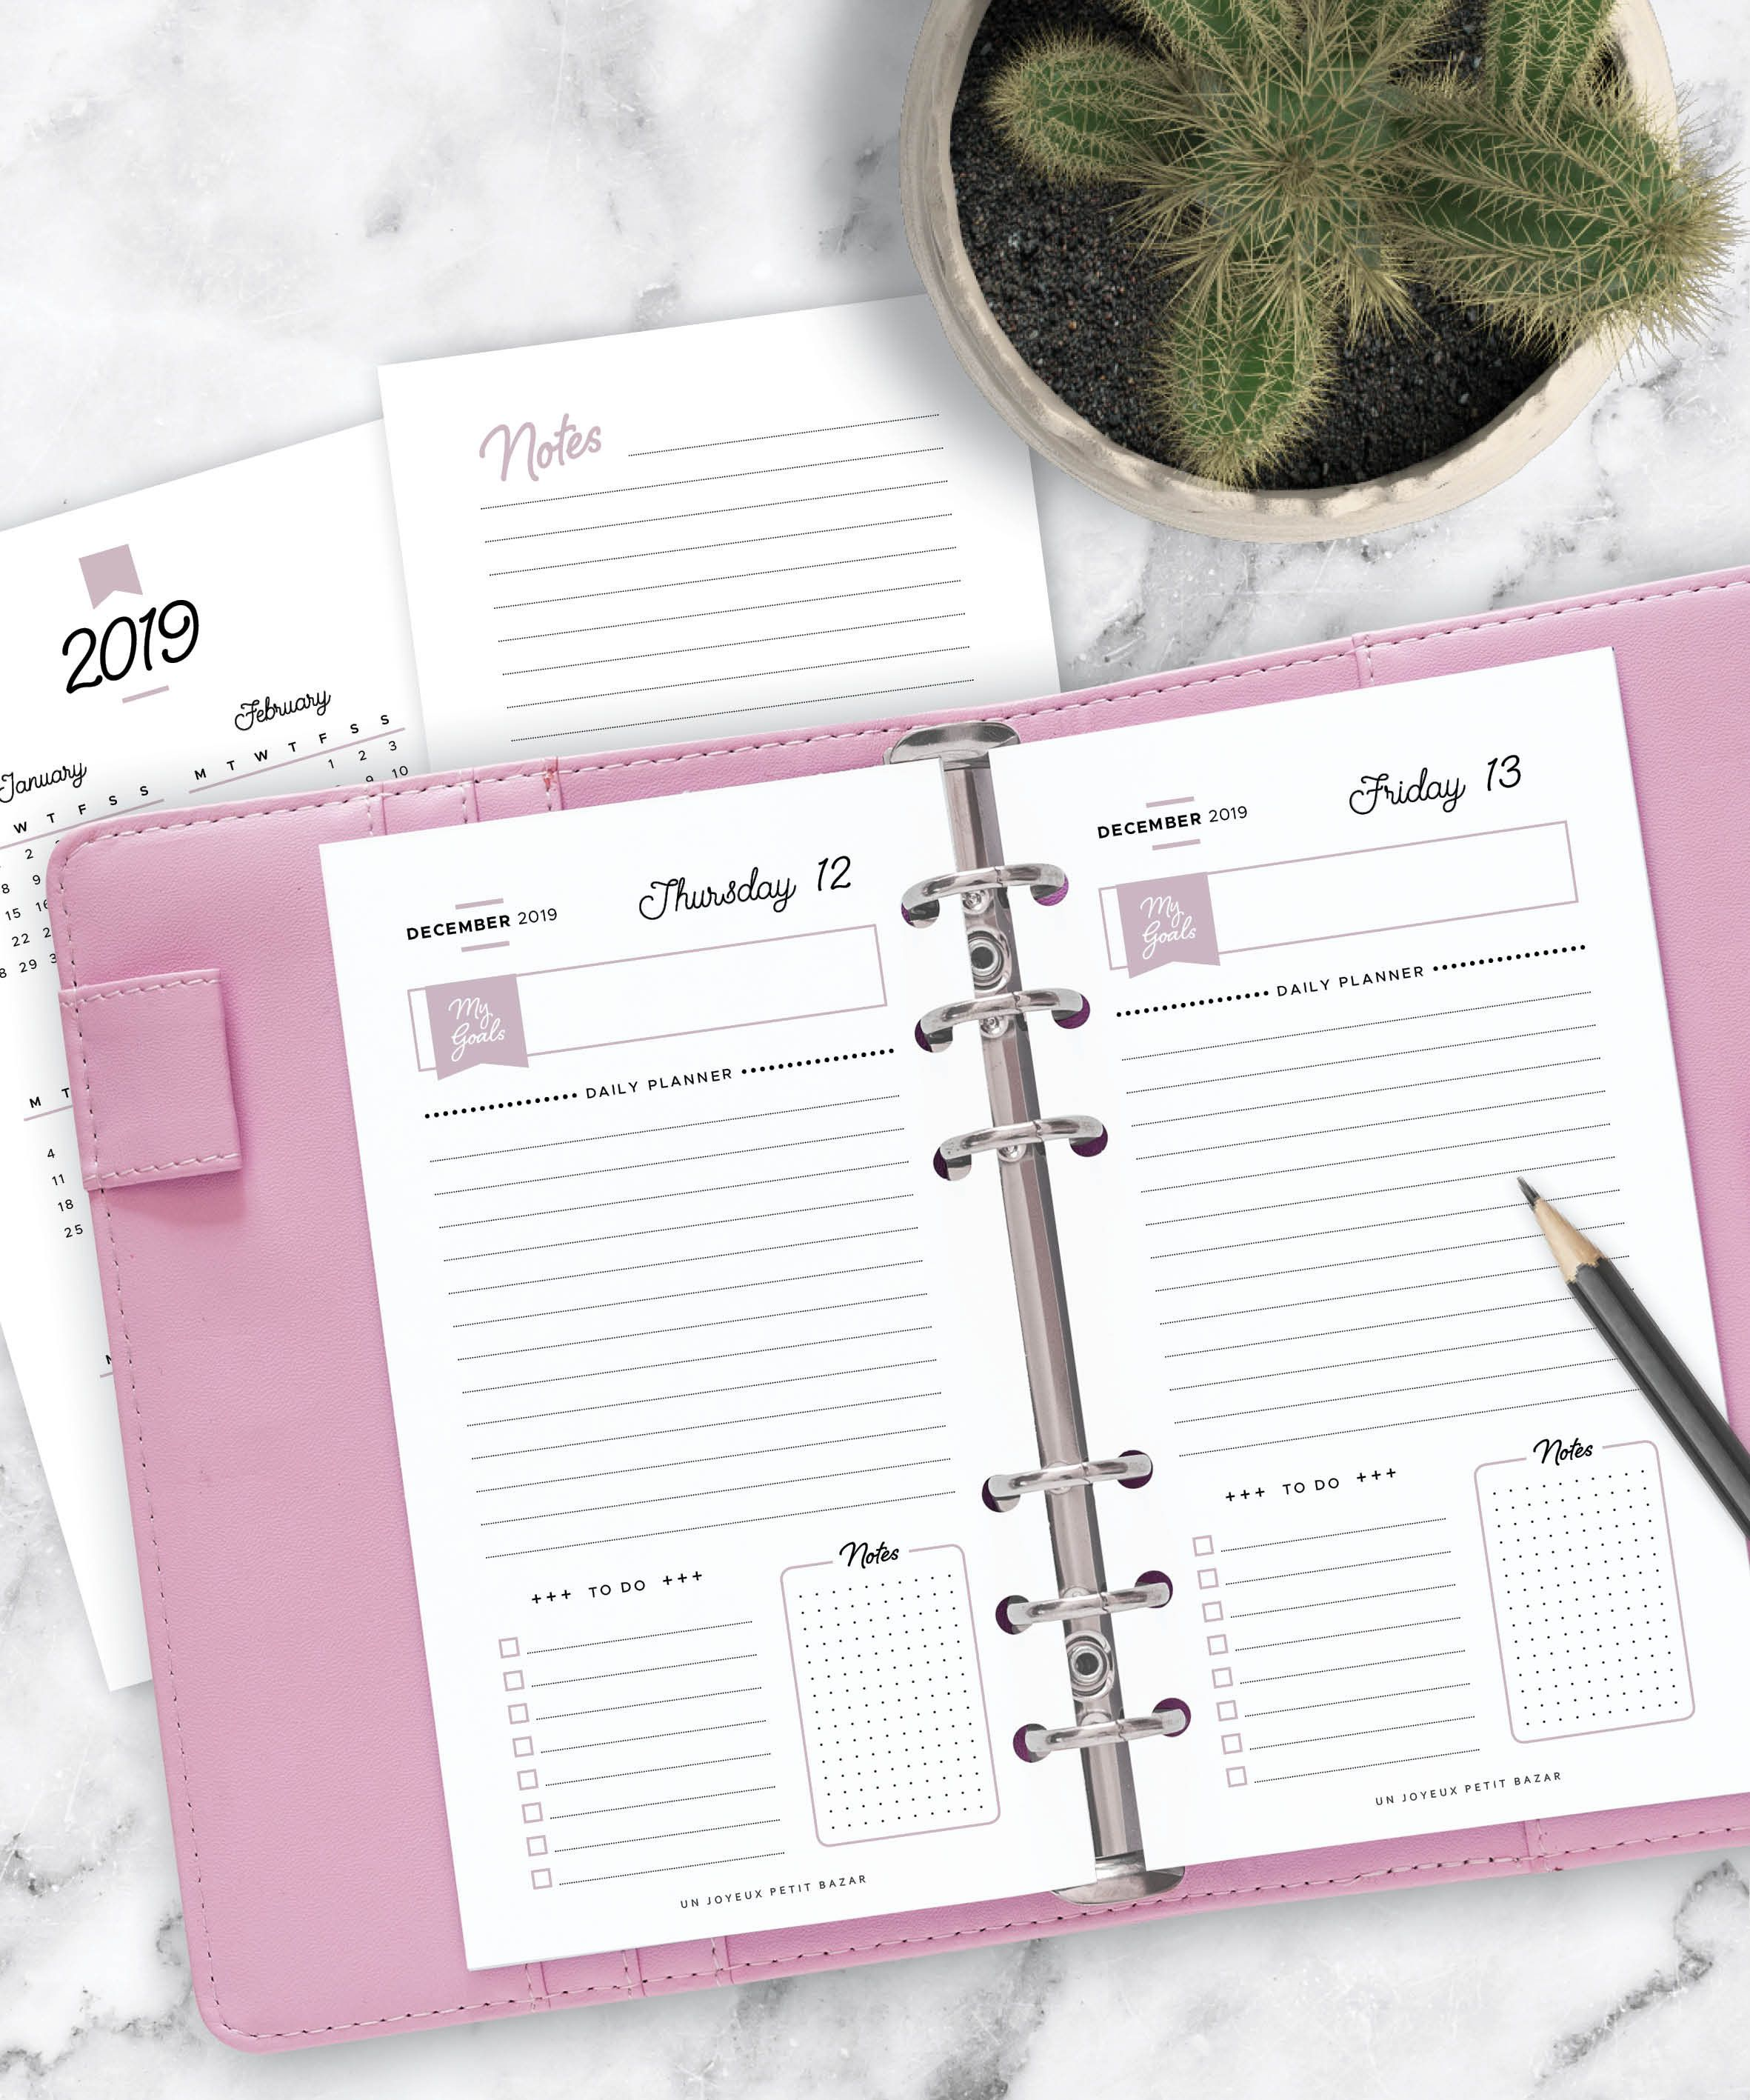 2020 2021 Daily Planner Set Printable Yearly And Monthly Etsy Planner Set Daily Planner Planner